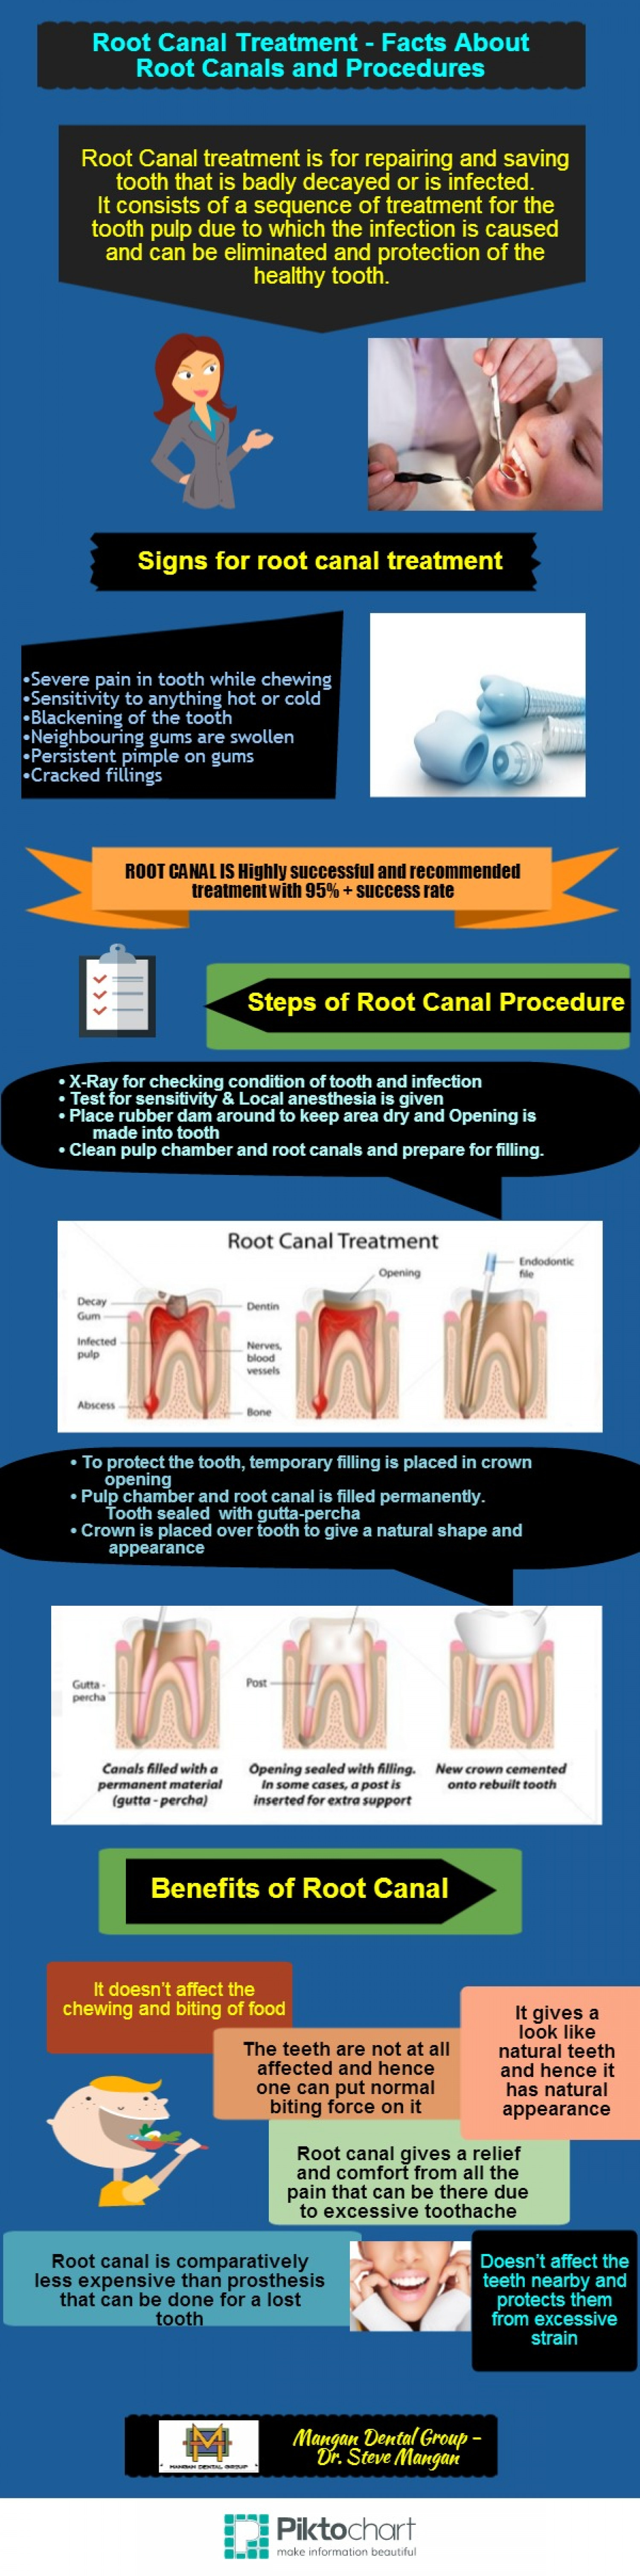 Root Canal Treatment - Facts About Root Canals and Procedures Infographic